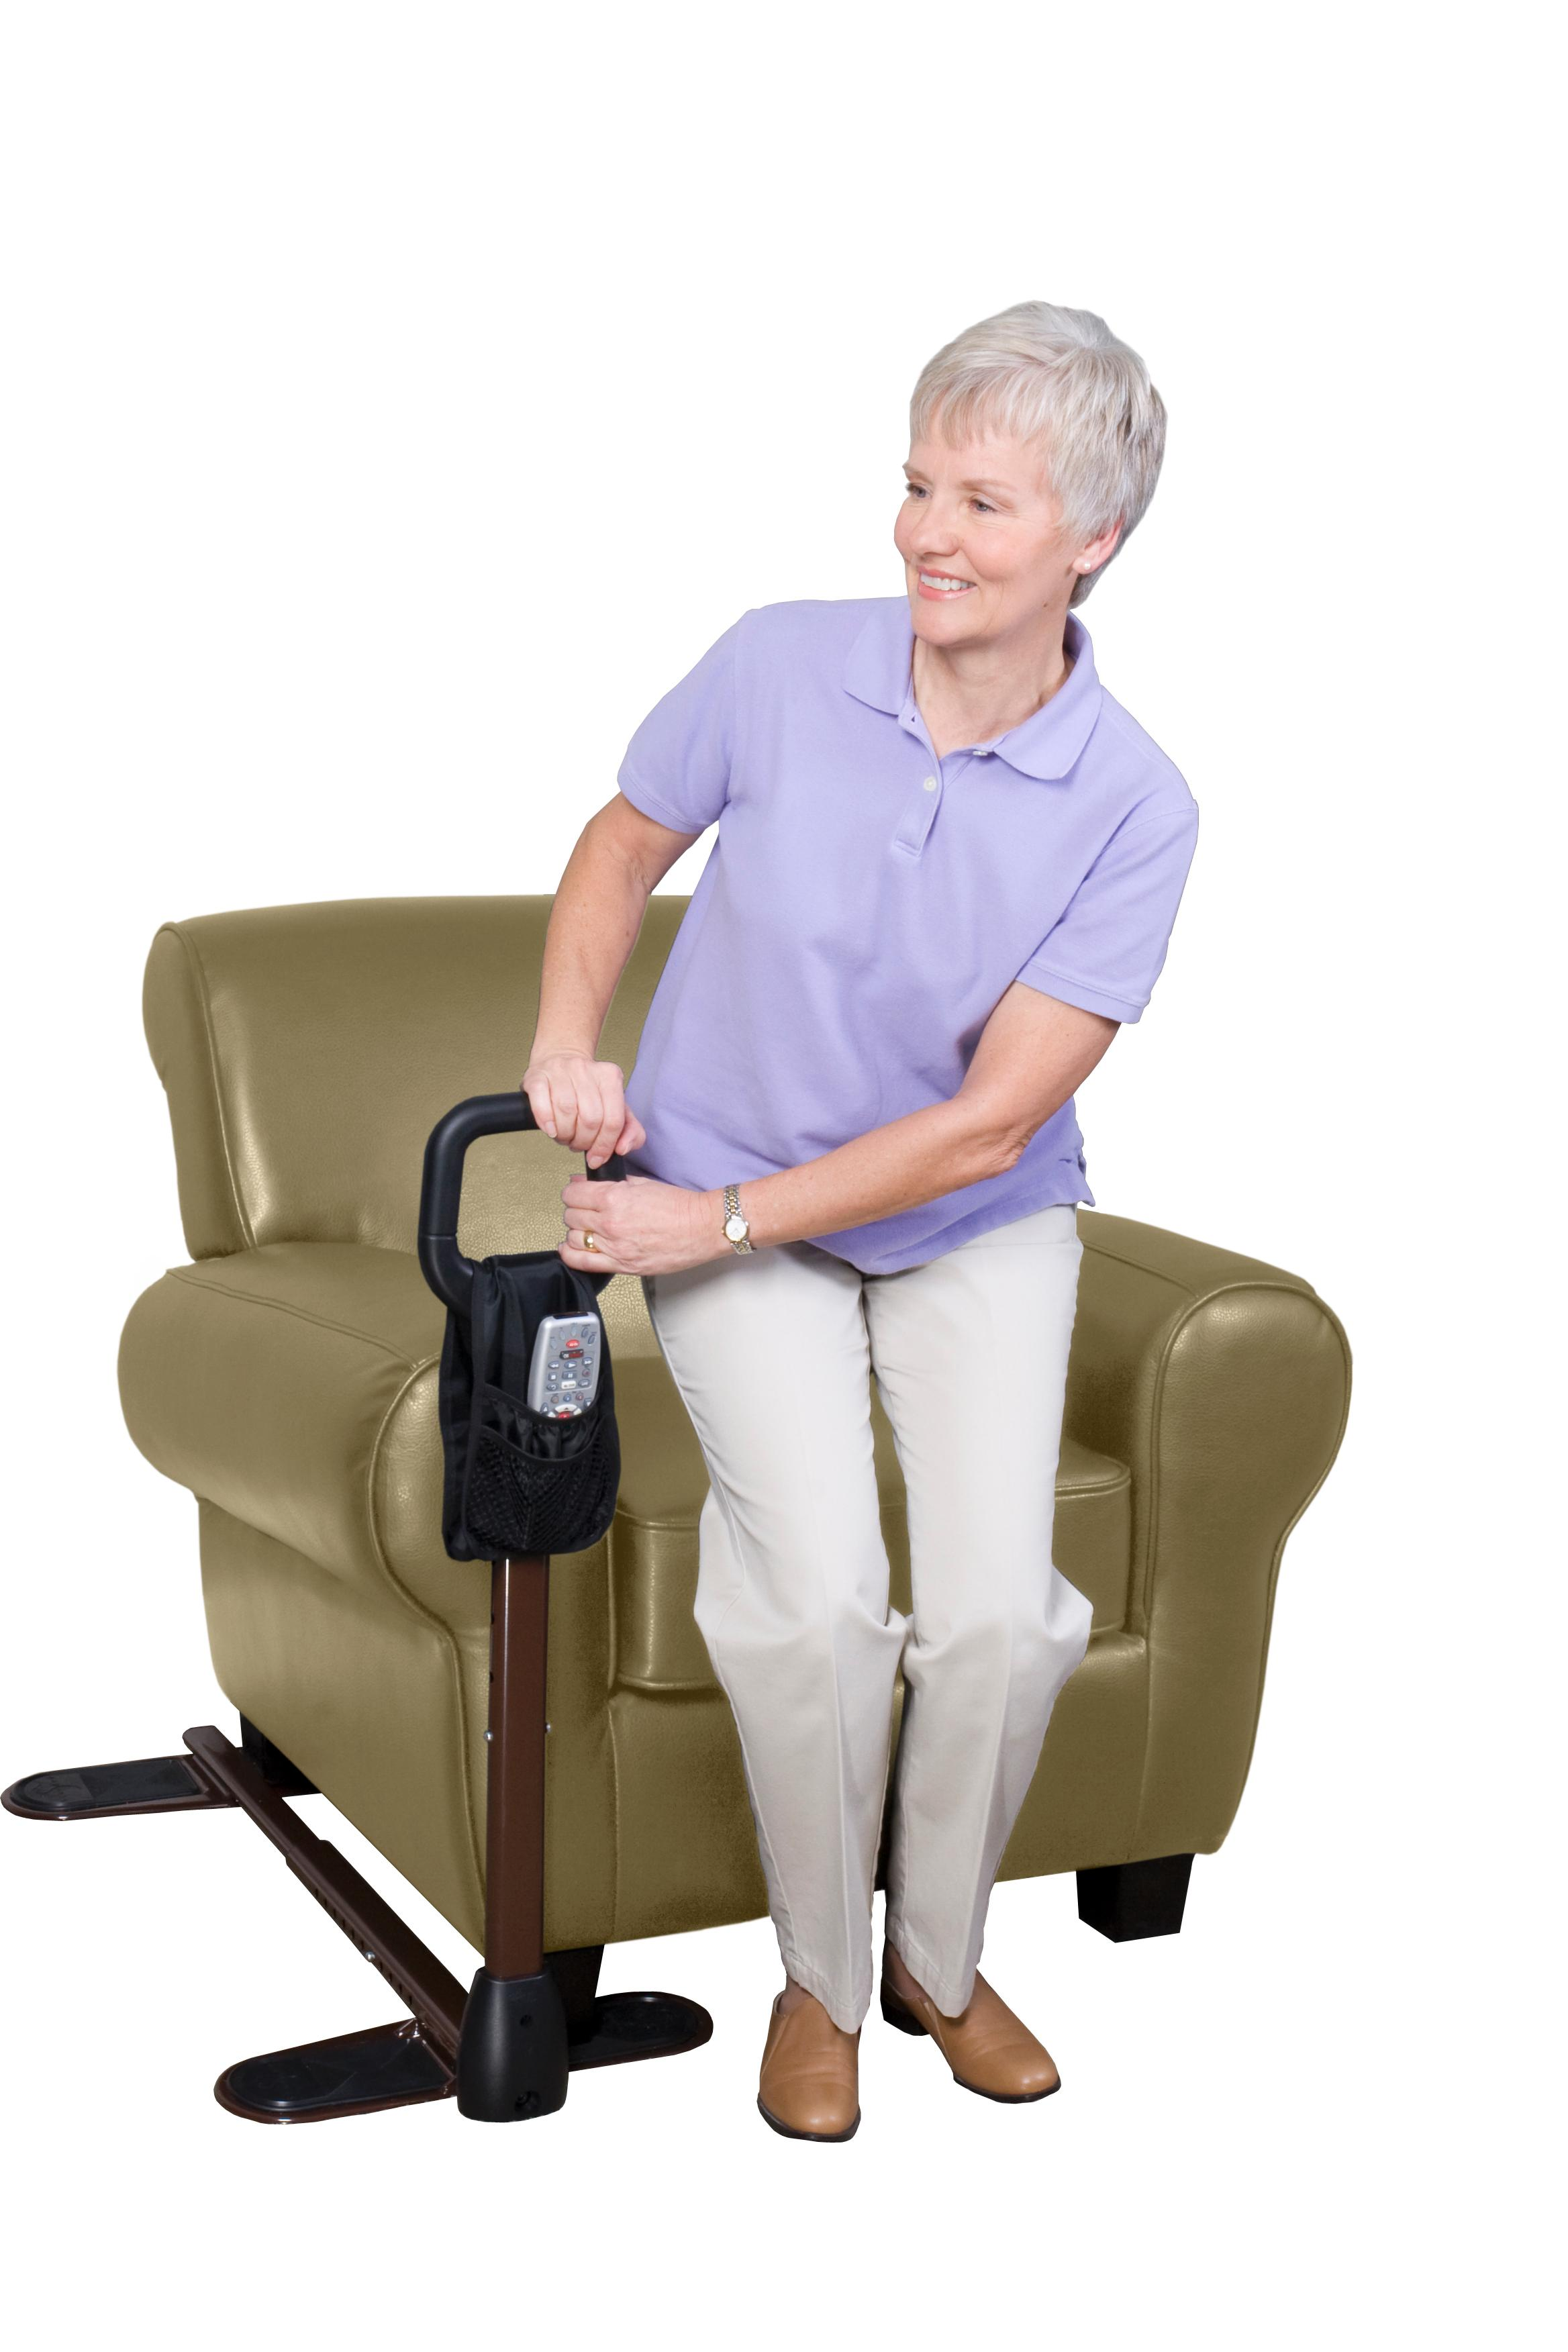 hip surgery chair etsy high cover amazon stander couchcane ergonomic safety support